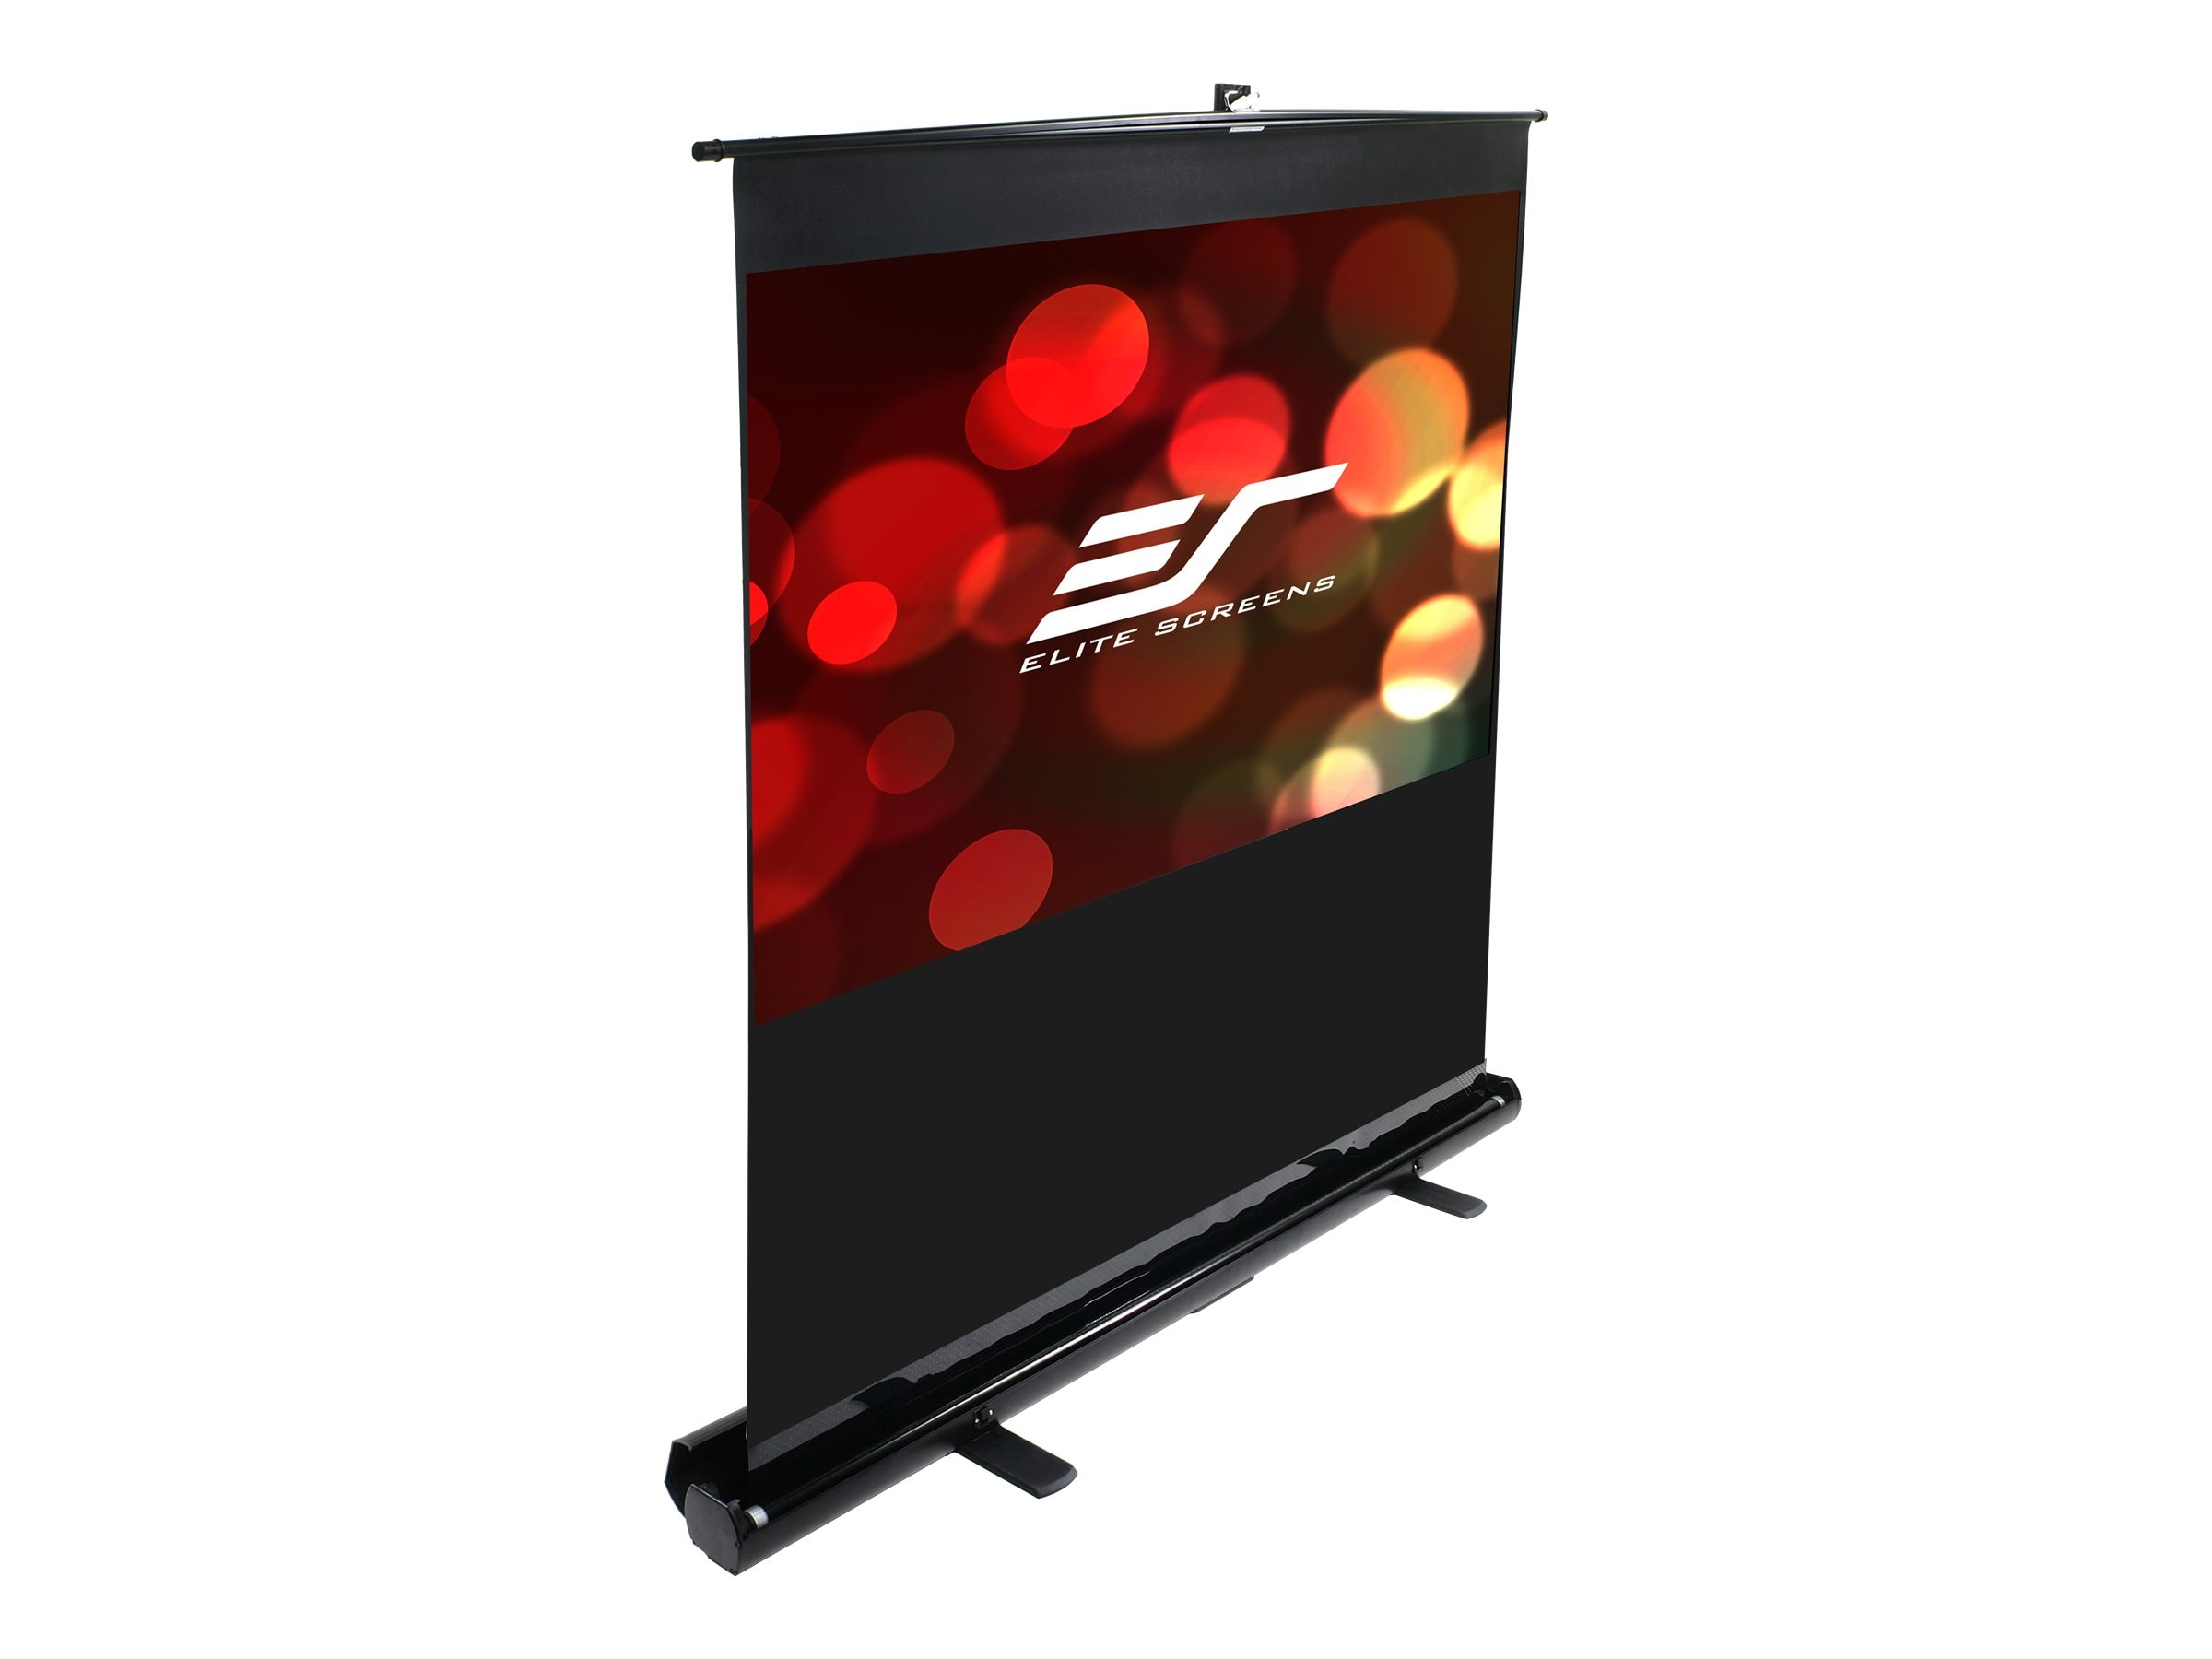 Elite ezCinema Series Projection Screen, MaxWhite, 4:3, 150, F150NWV, 12579507, Projector Screens